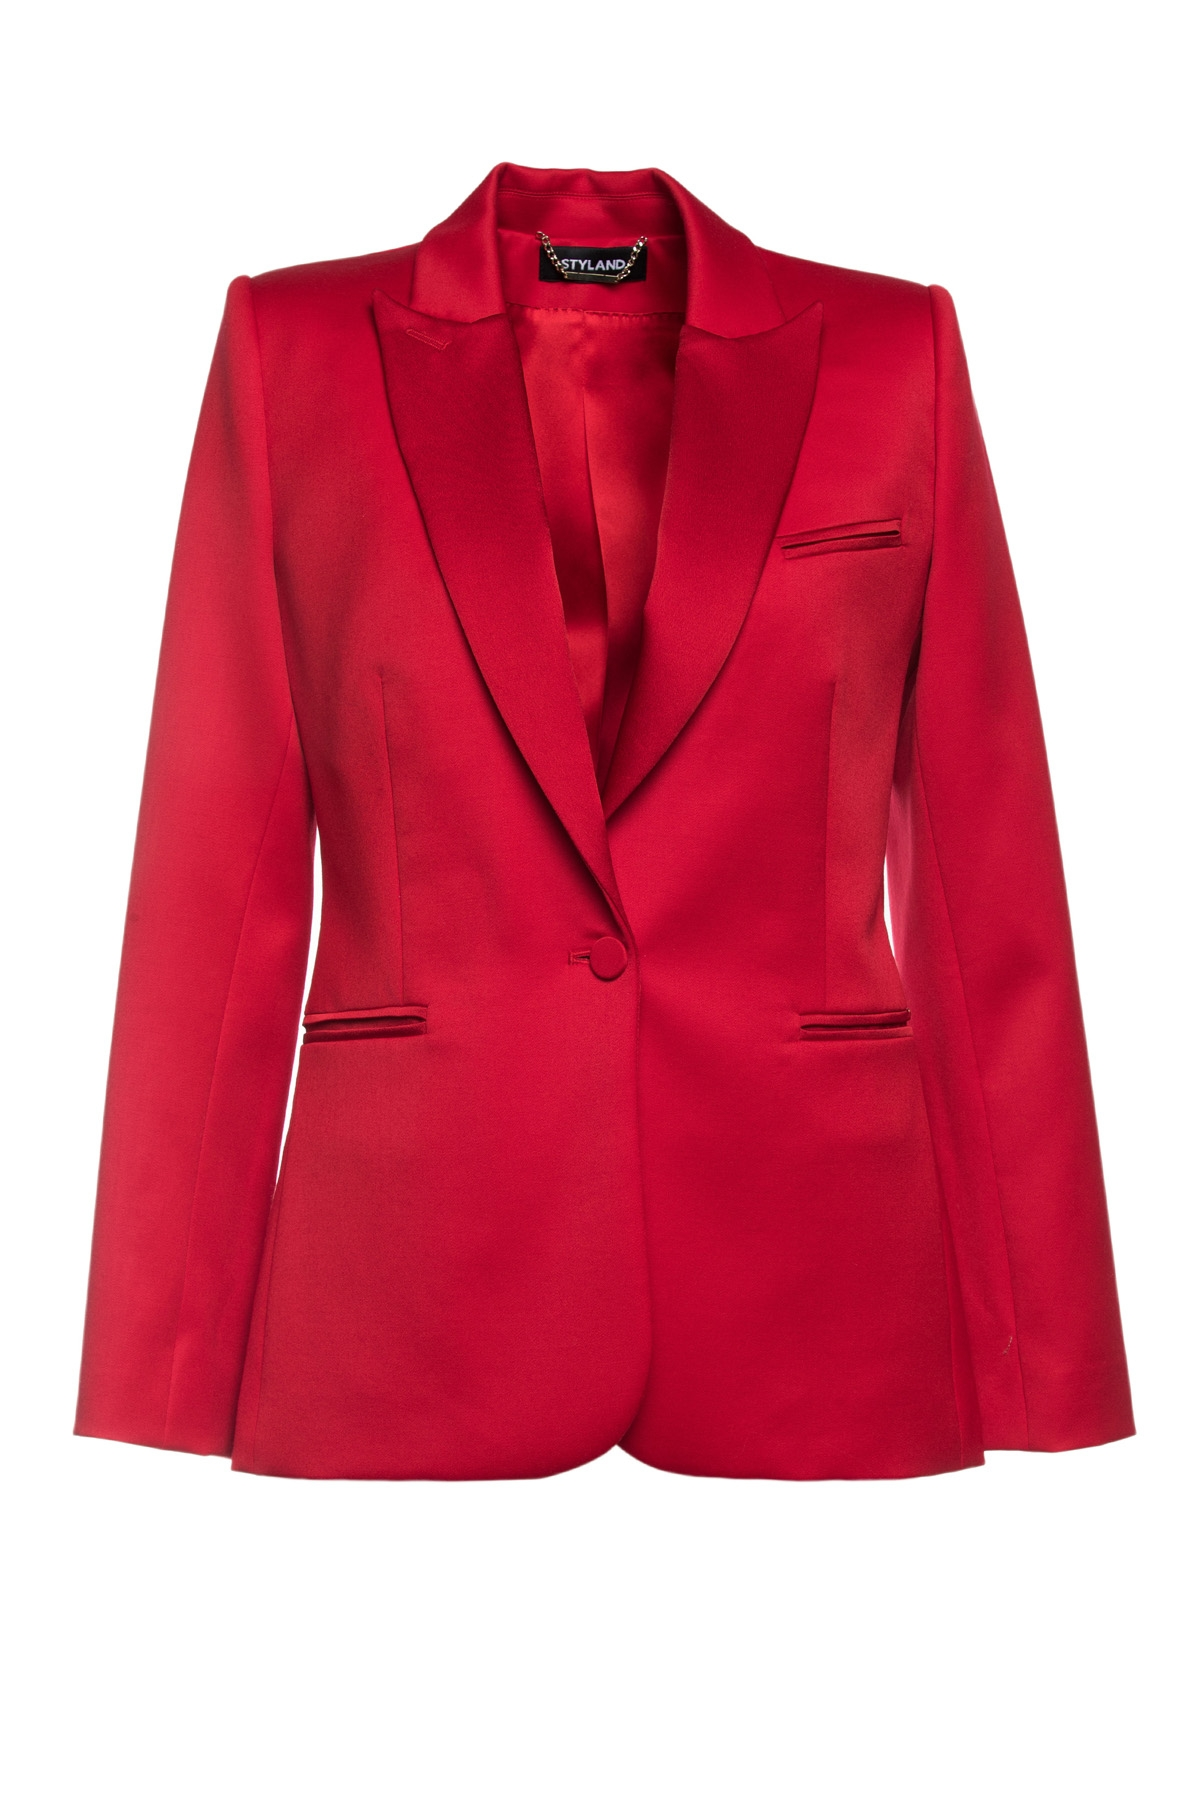 RED SATIN-TRIMMED WOOL TUXEDO WITH SILK LINING